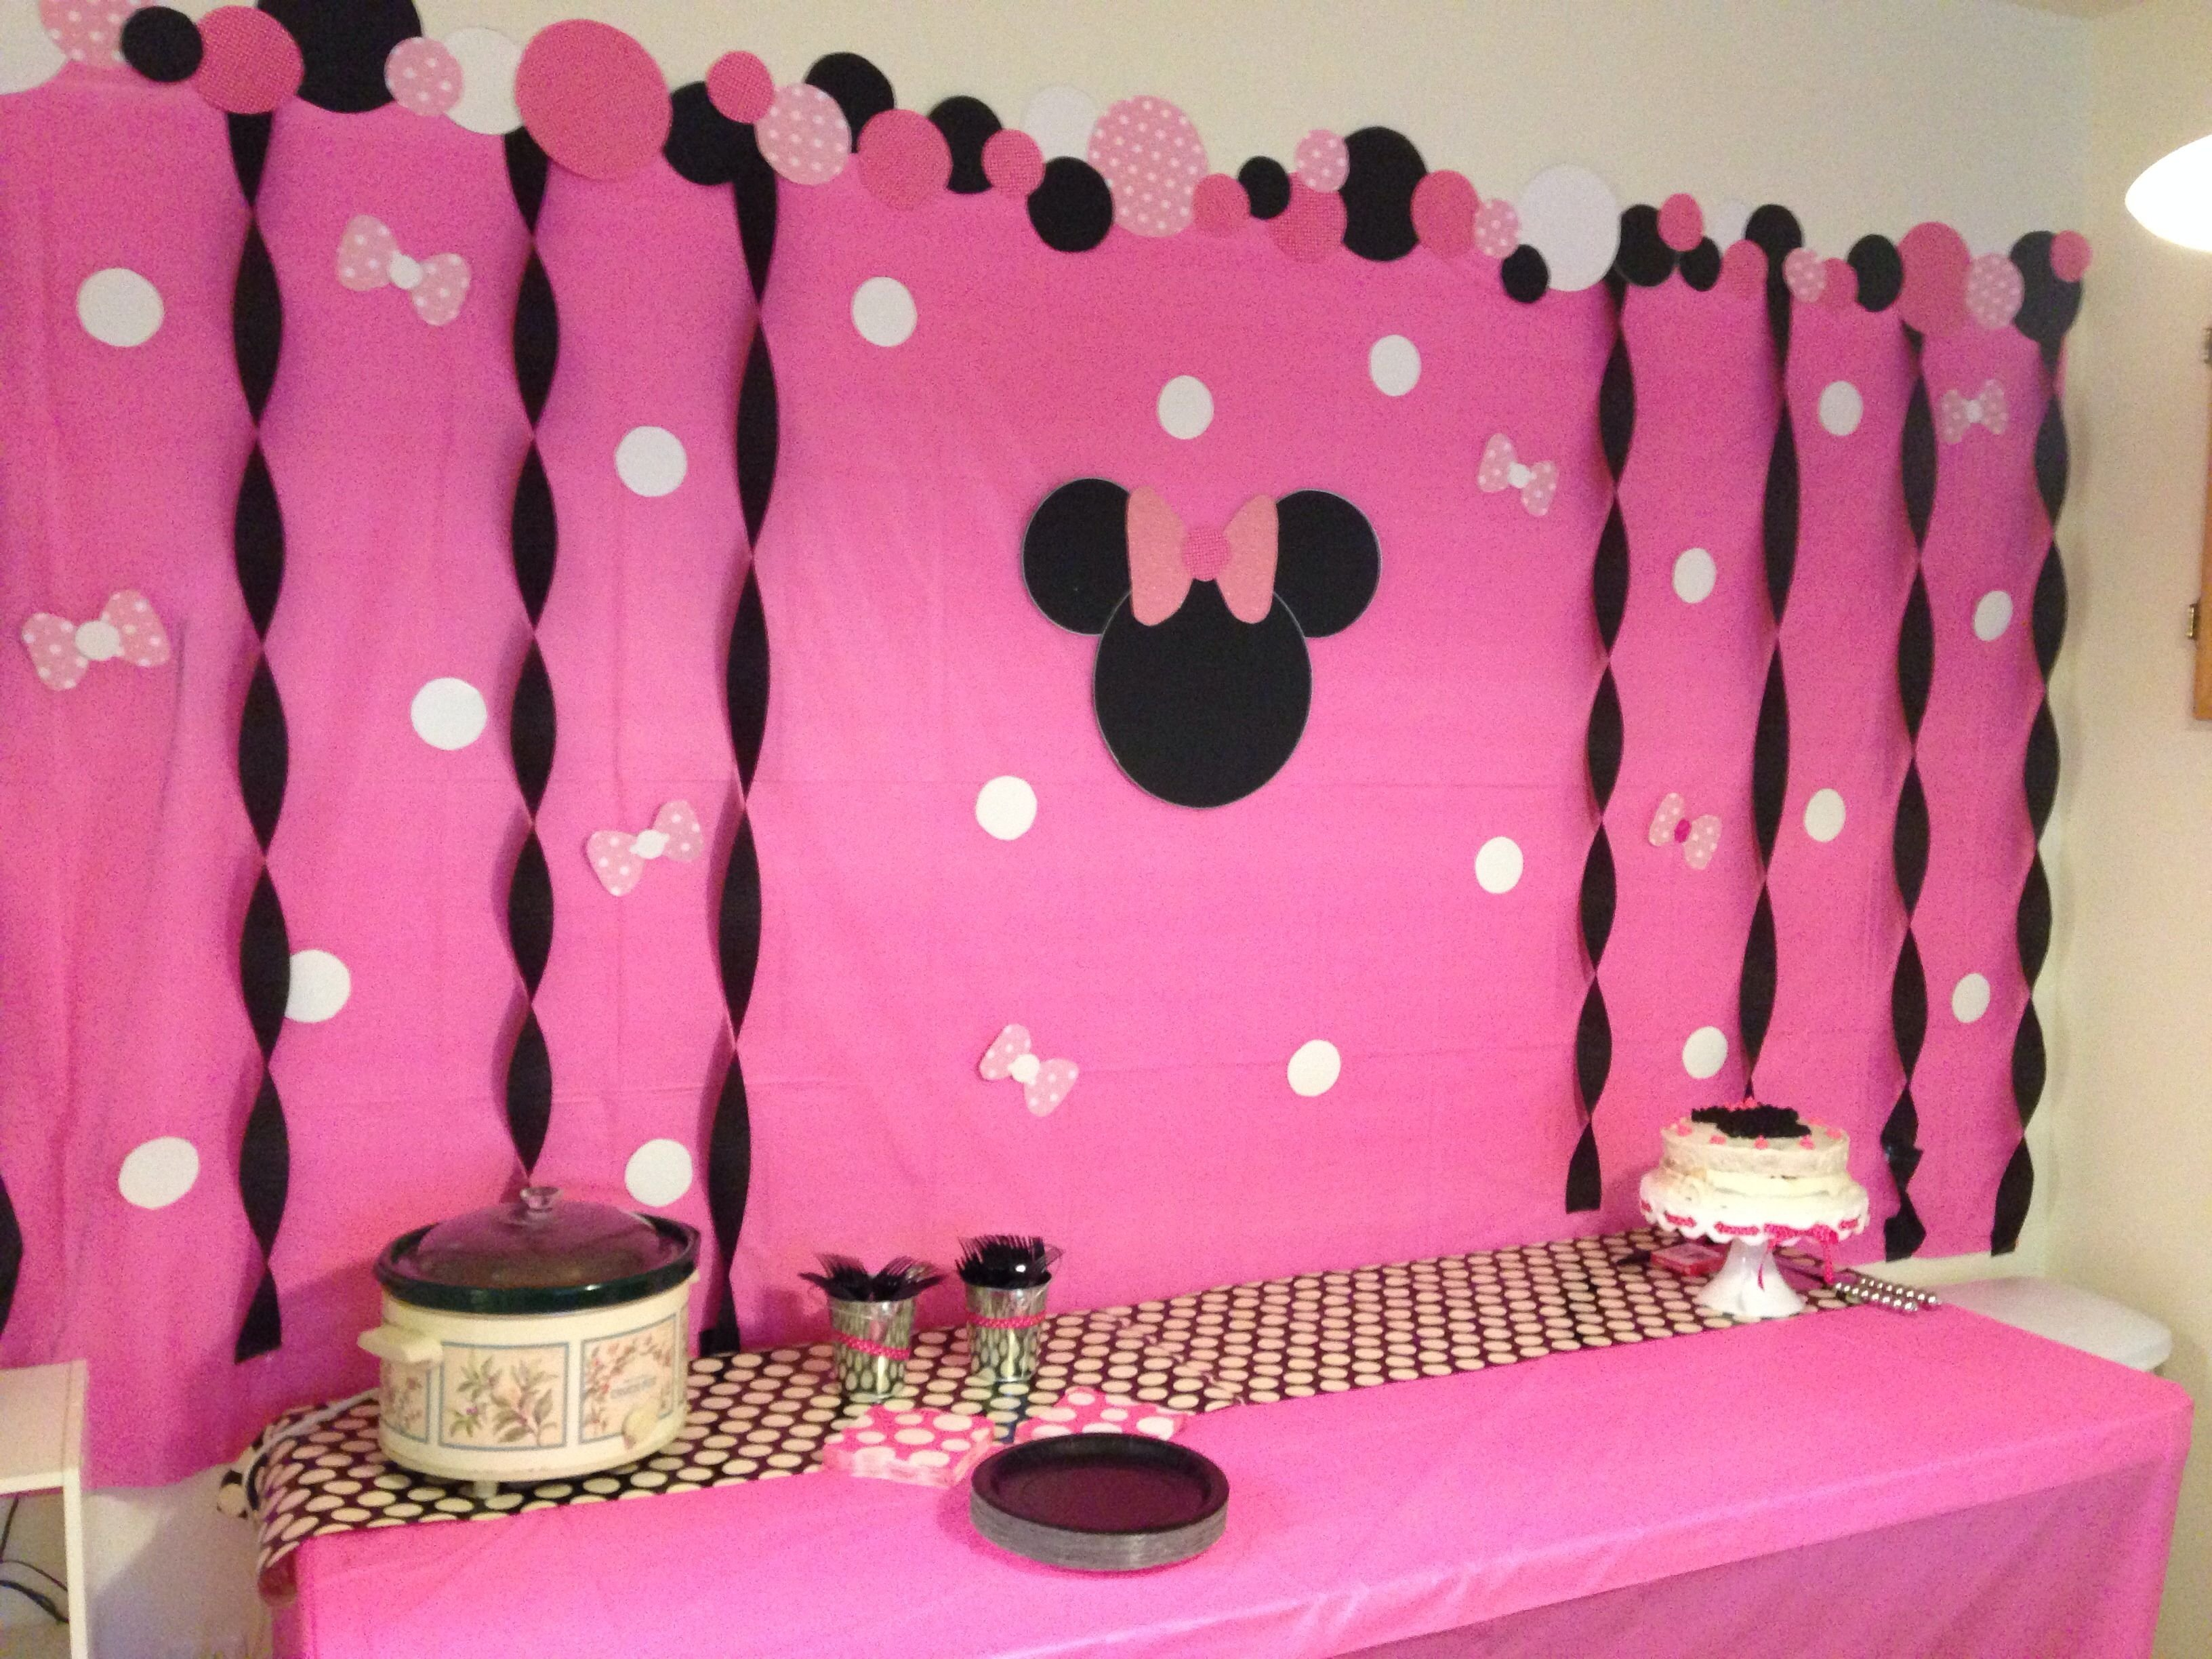 10 Unique Minnie Mouse Birthday Decoration Ideas madisons minnie mouse birthday party diy backdrop look what i 7 2020